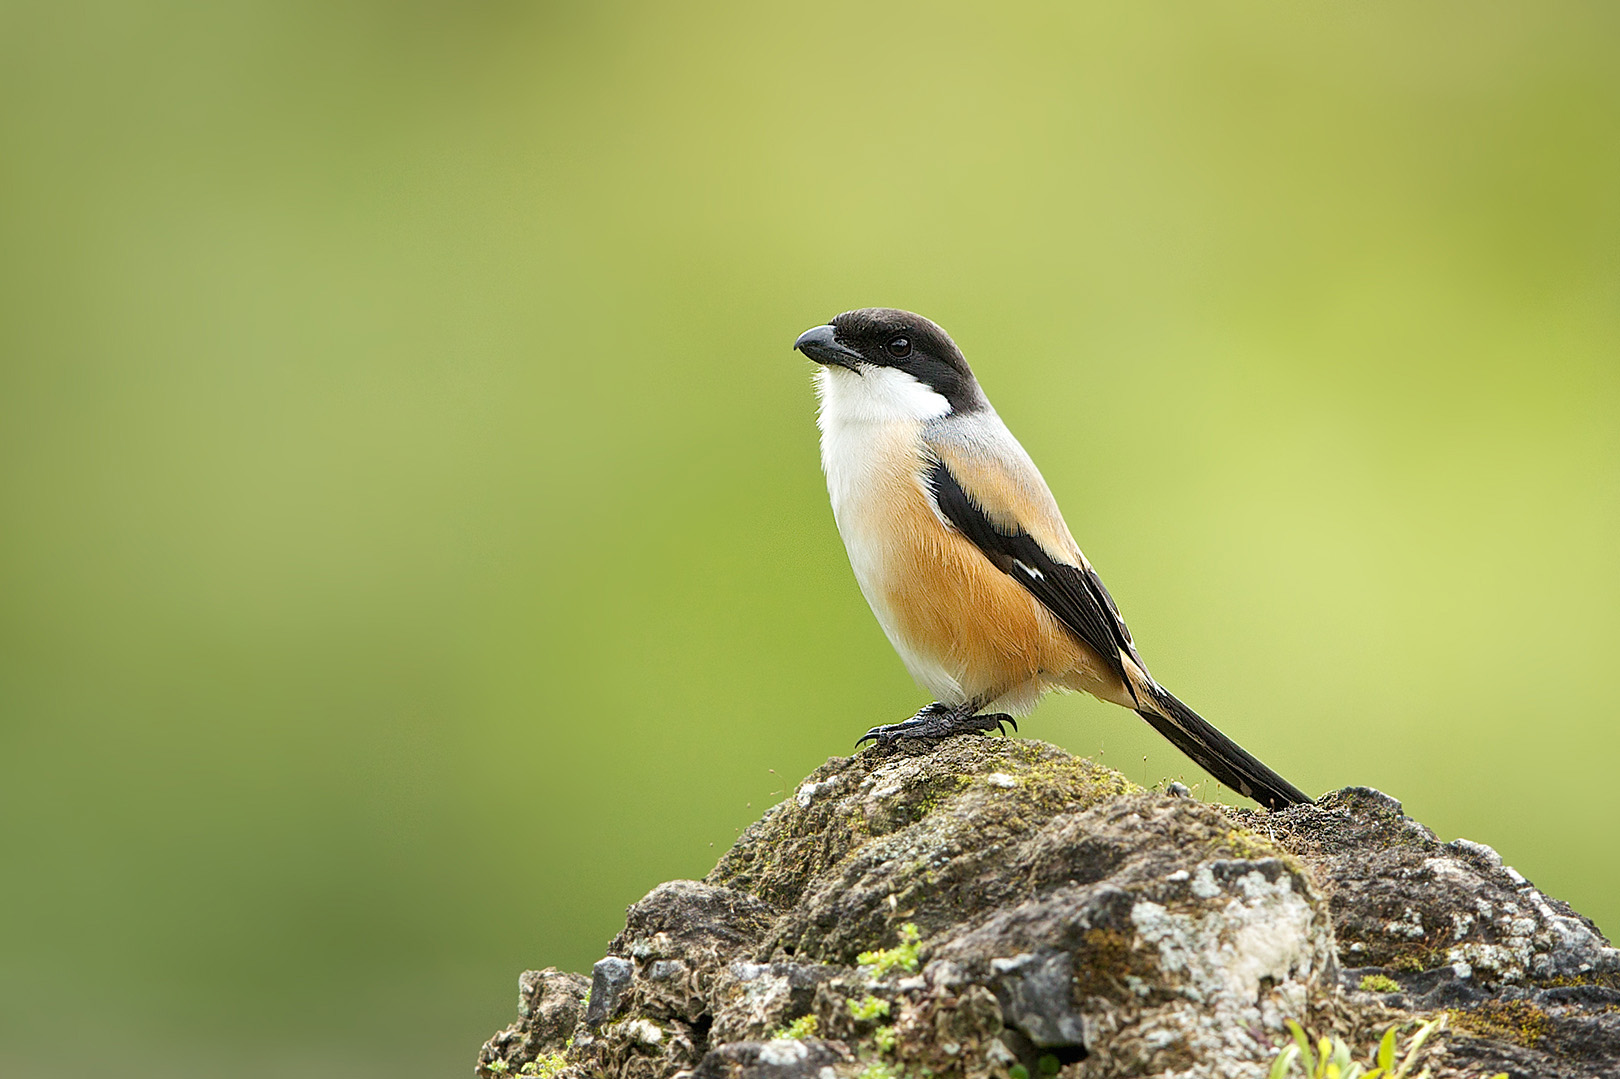 Long-tailed Shrike – Langstaartklauwier – Lanius schach